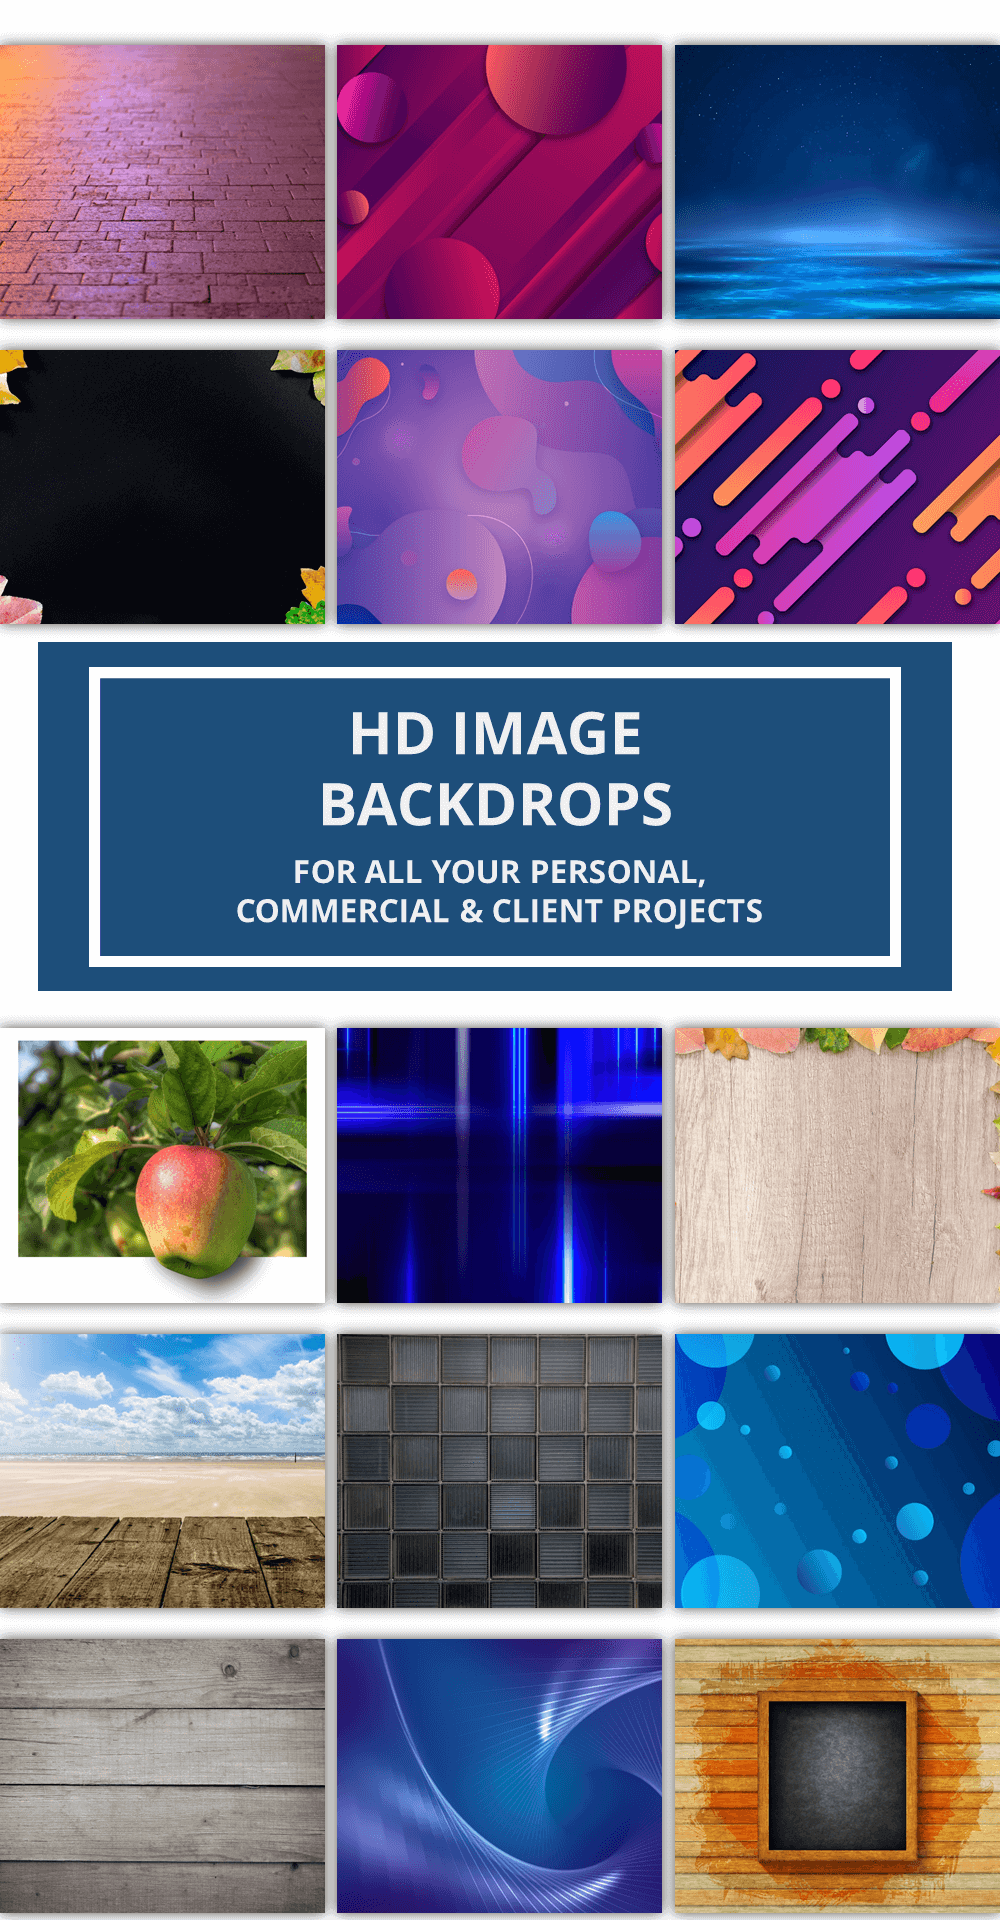 HD_Image_Backdrops_1